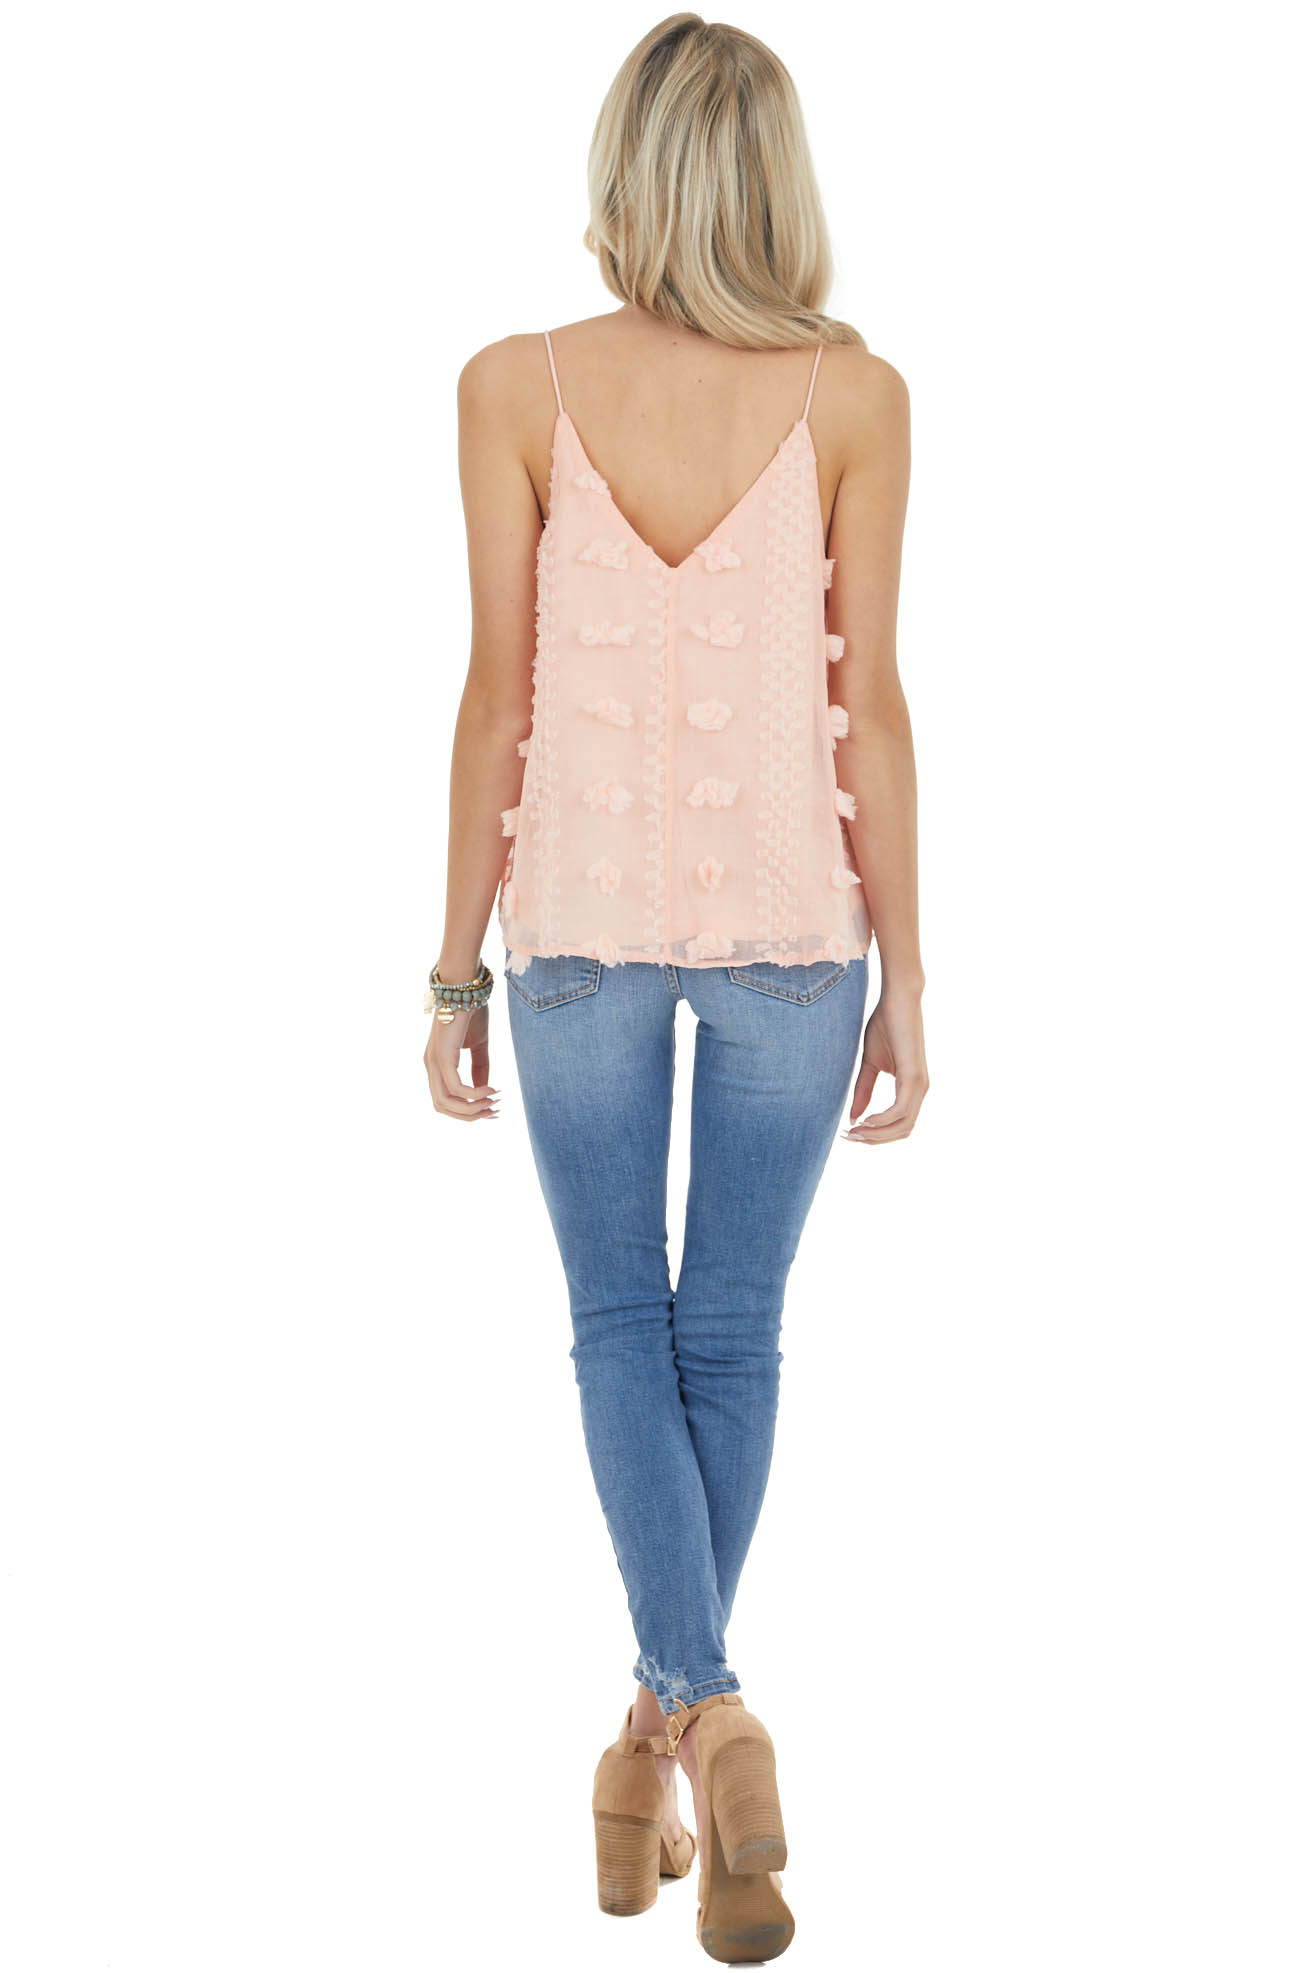 Coral Textured Swiss Dot Cami Tank Top with Rounded Hem